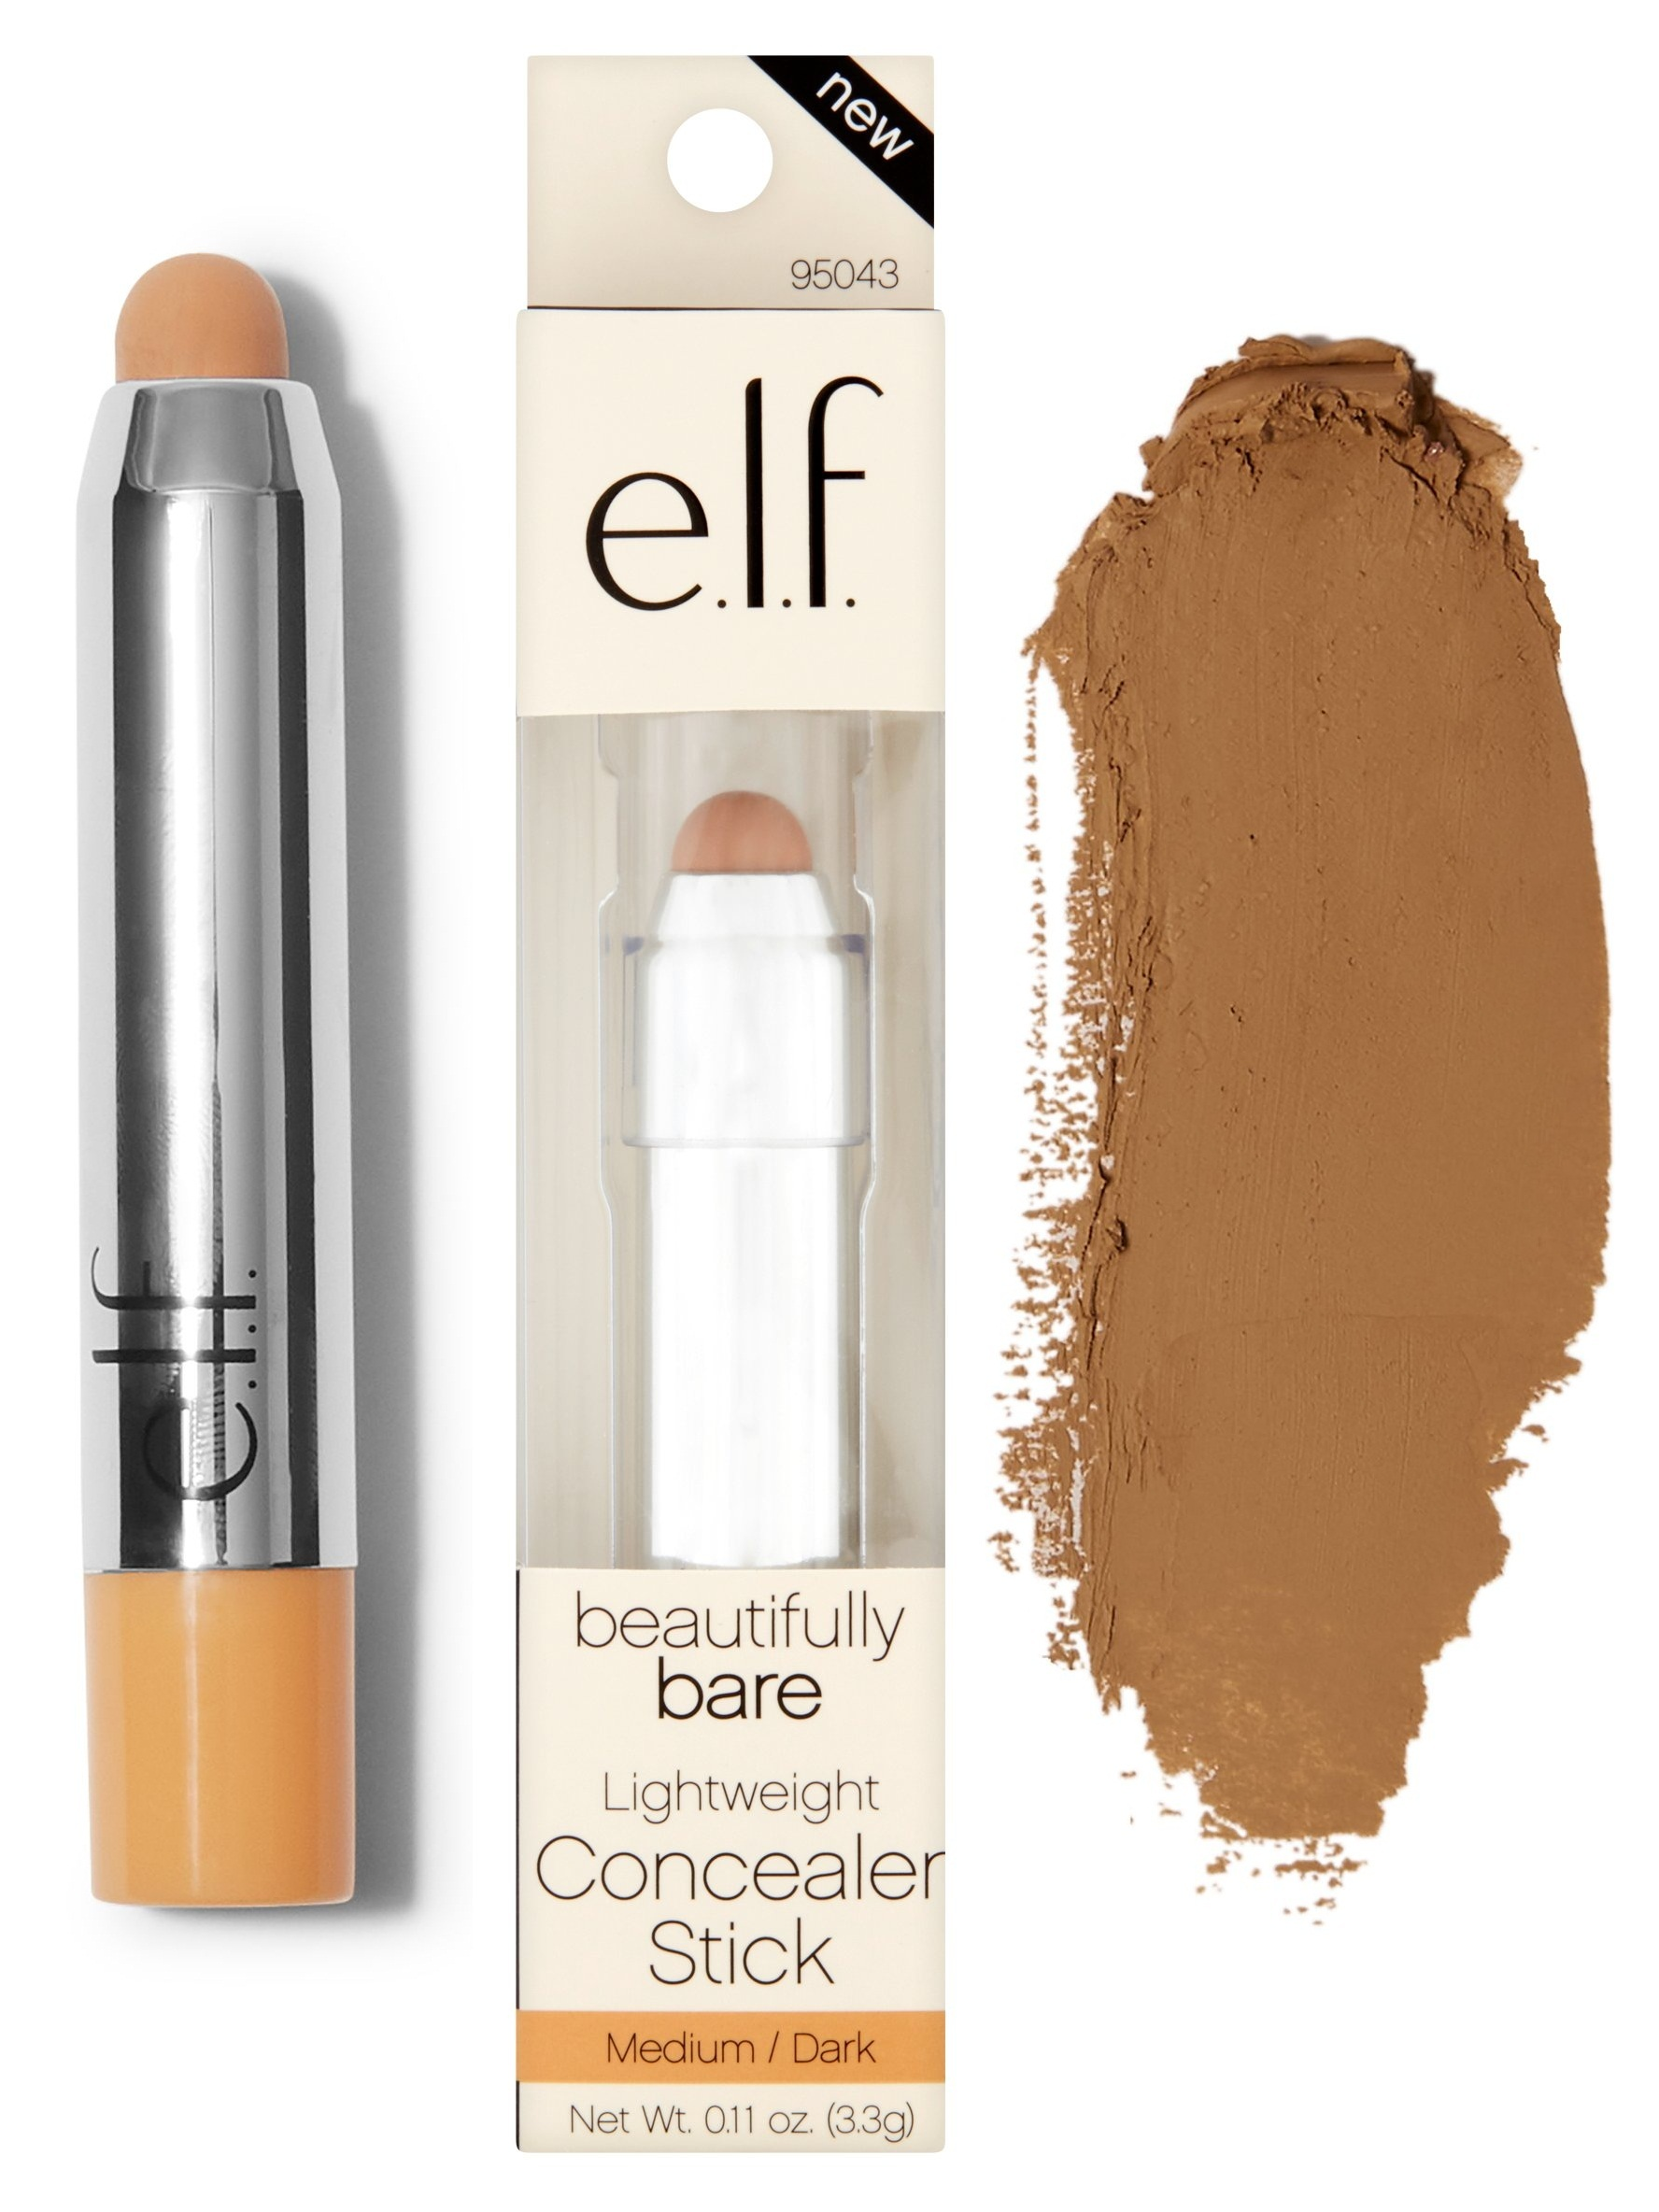 e.l.f. Beautifully Bare Lightweight Concealer Stick - Medium.Dark.jpg